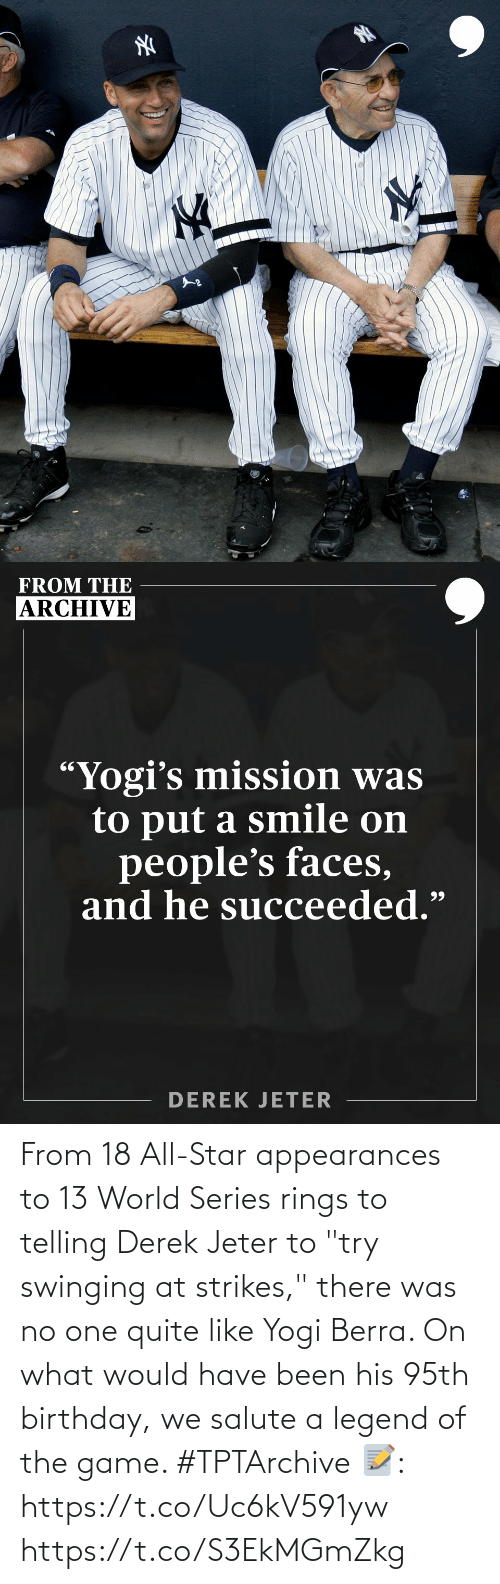 """Quite: From 18 All-Star appearances to 13 WorldSeries rings to telling Derek Jeter to """"try swinging at strikes,"""" there was no one quite like Yogi Berra.   On what would have been his 95th birthday, we salute a legend of the game. #TPTArchive  📝: https://t.co/Uc6kV591yw https://t.co/S3EkMGmZkg"""